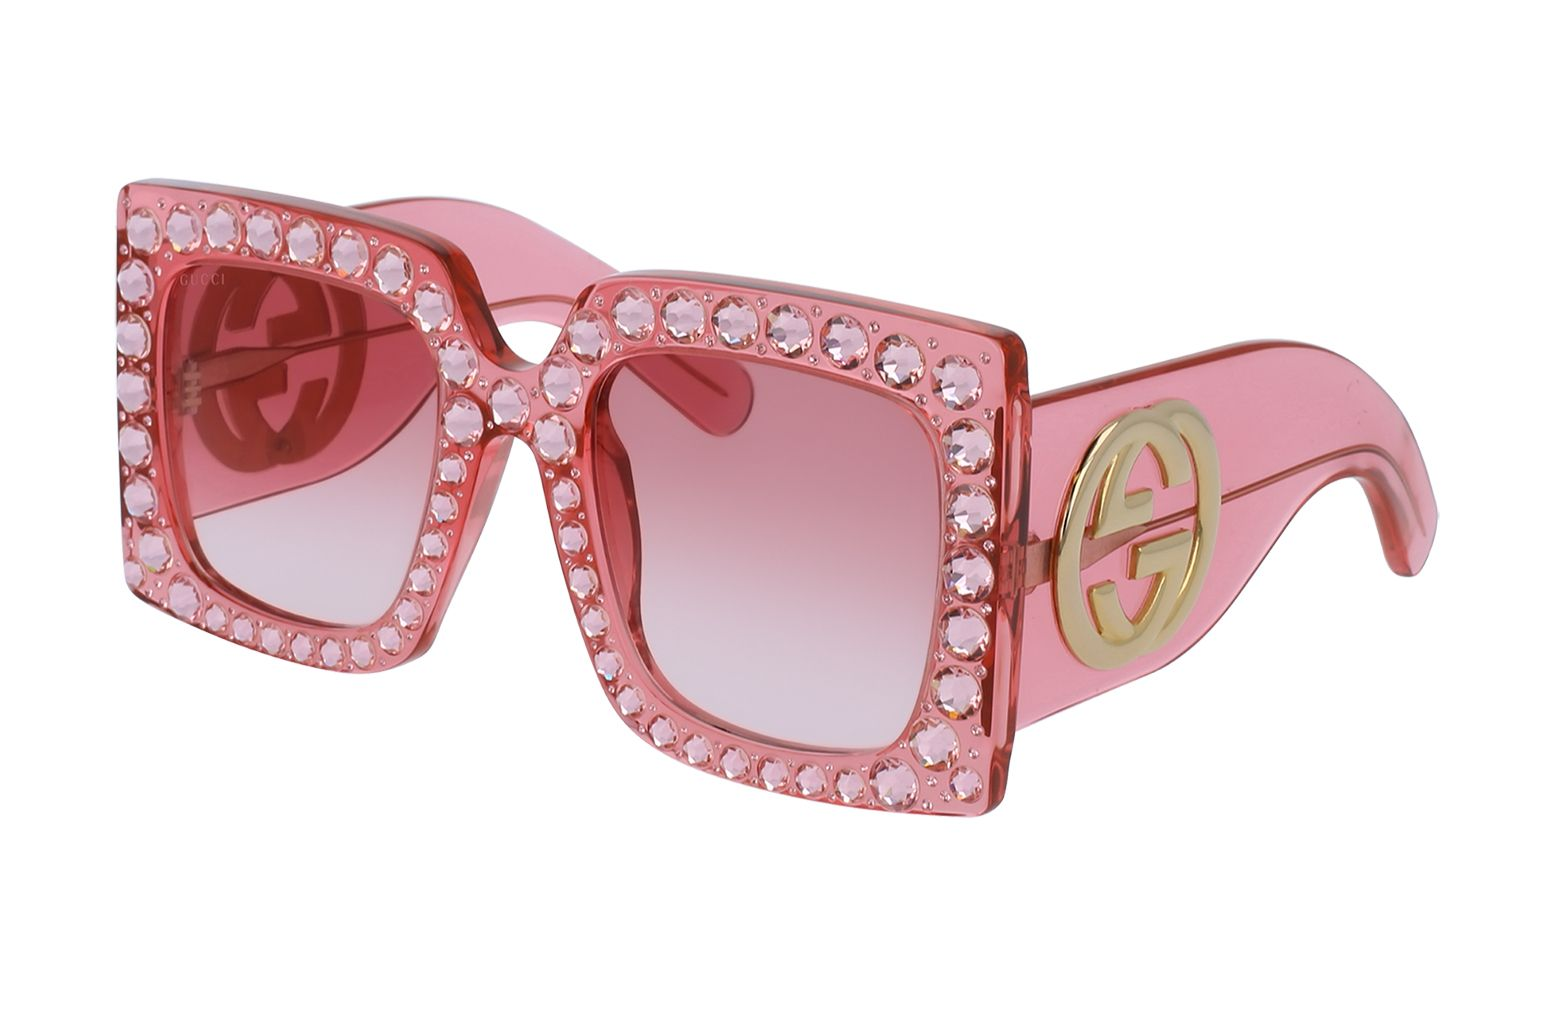 7318c2ca6f3 Rihanna s After-Party Gucci Sunglasses  All About the Elton-Like .